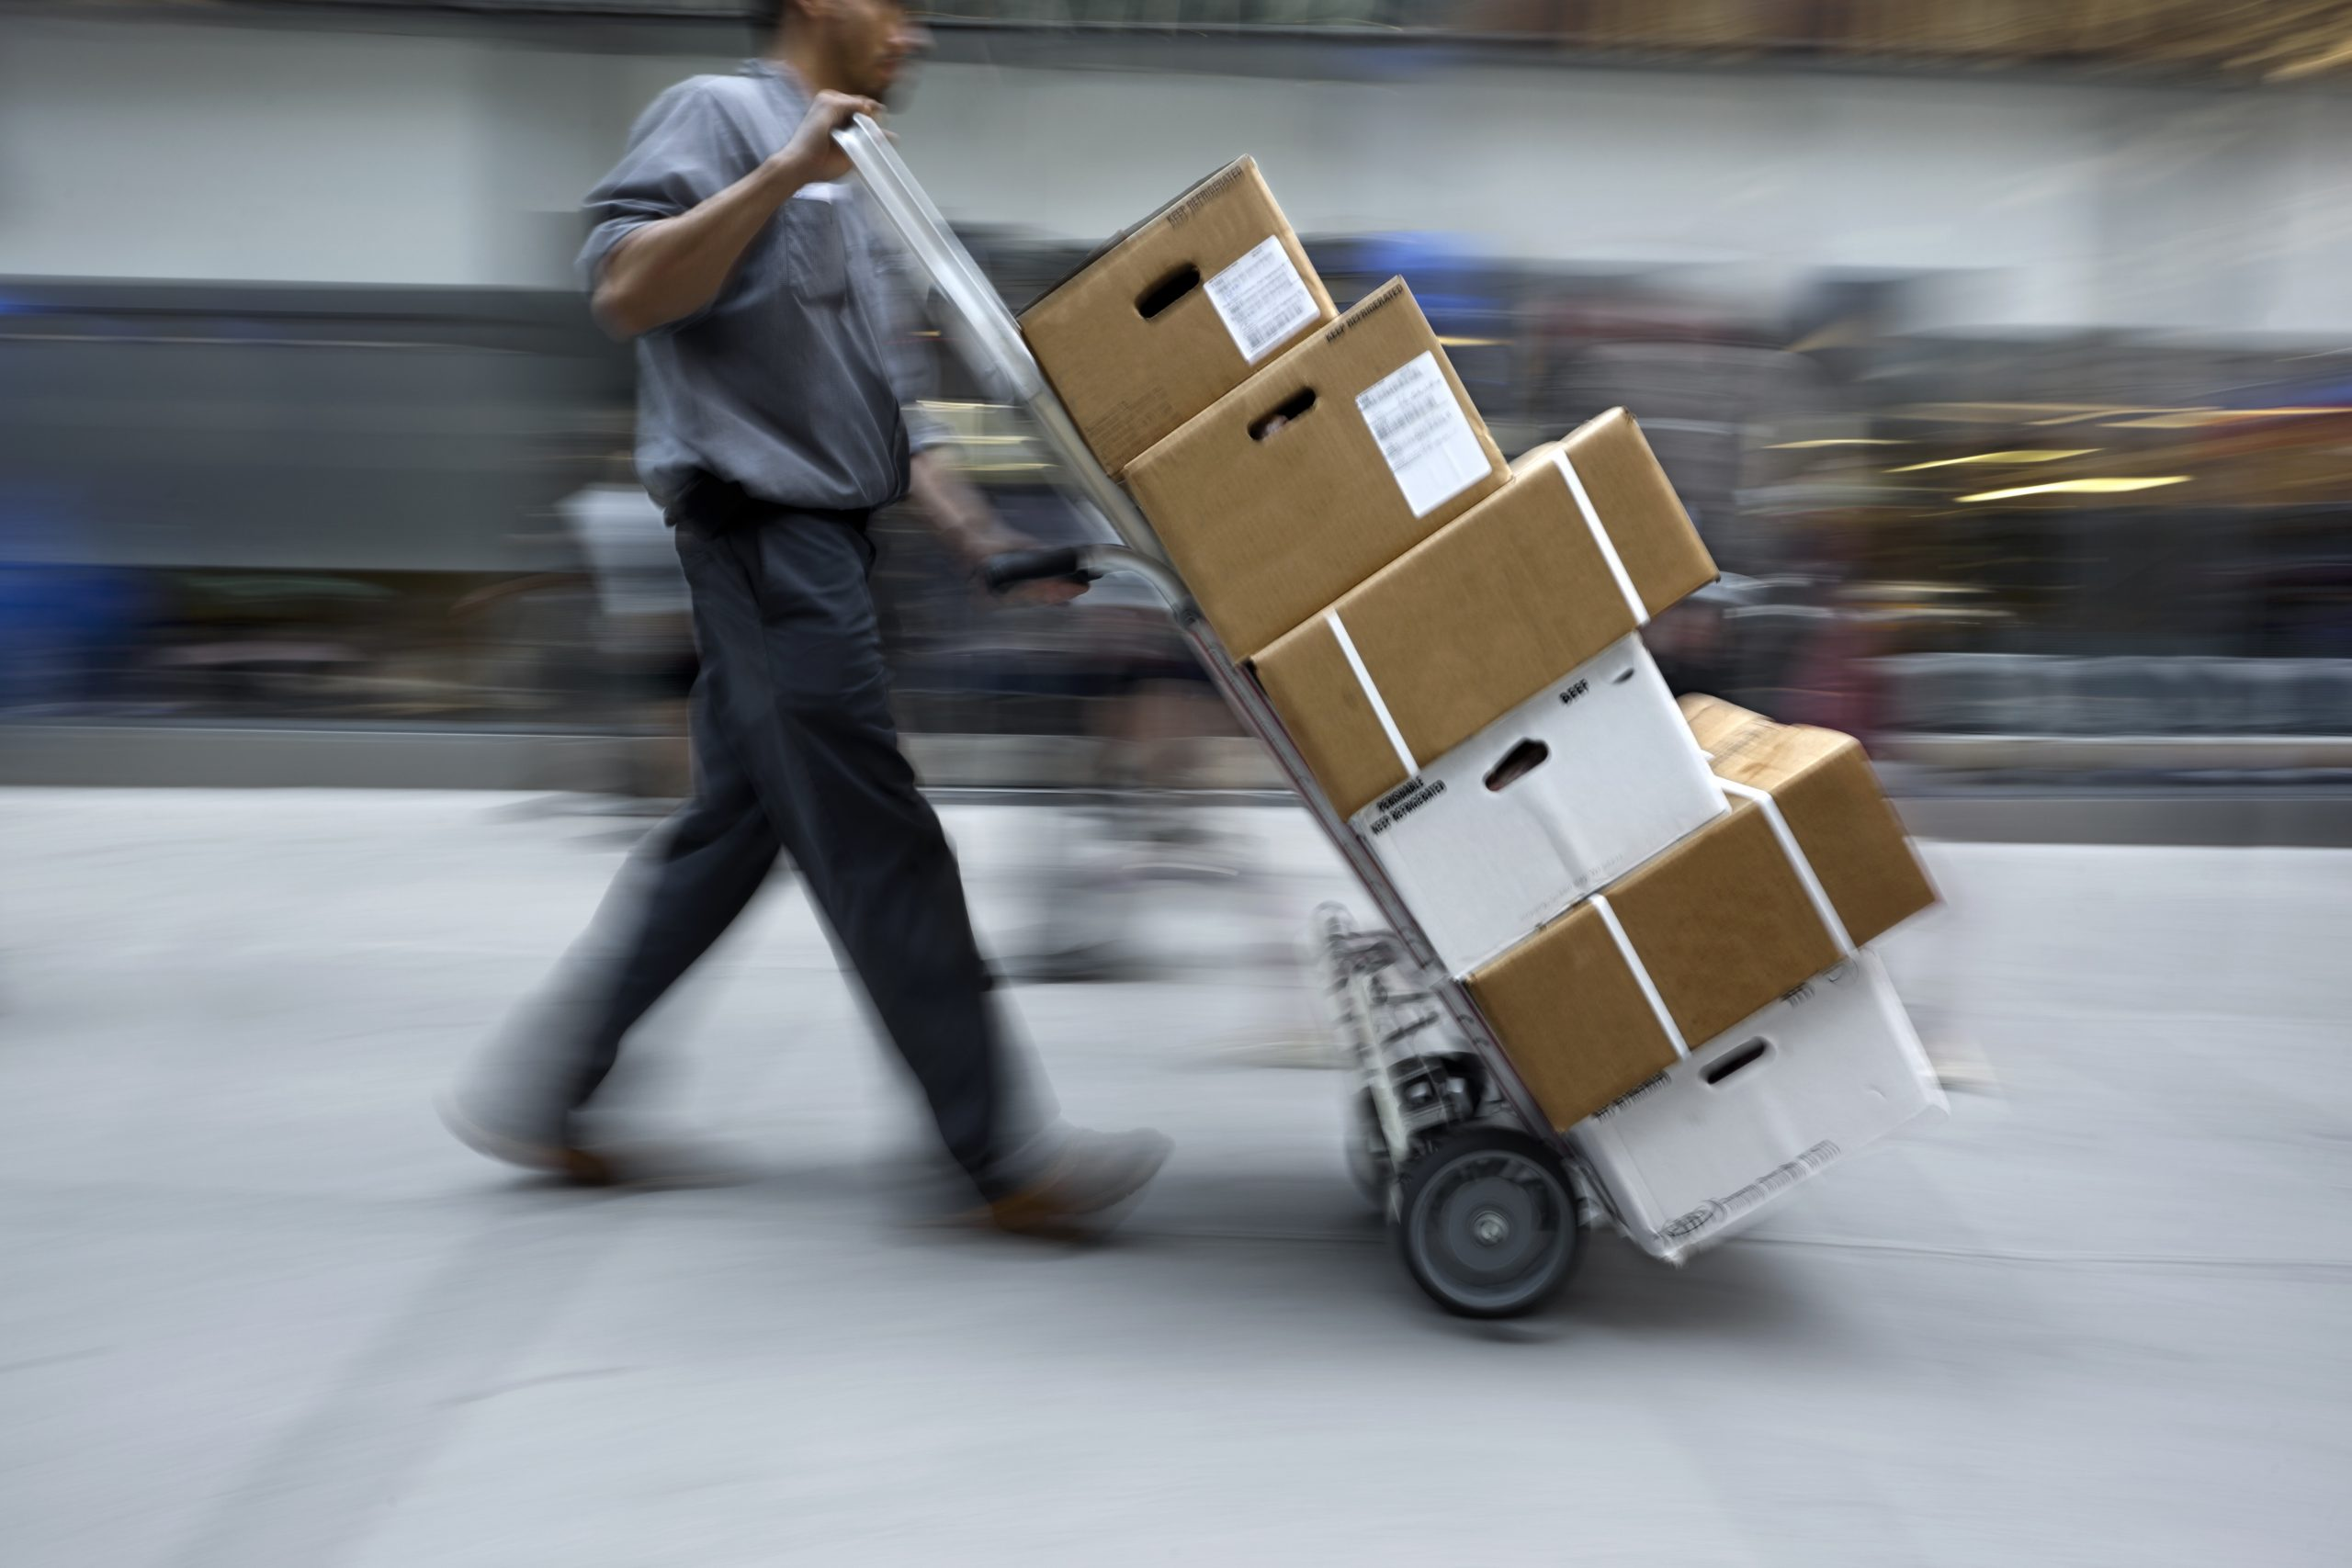 Holiday shipping is set to increase by 12 percent this year.